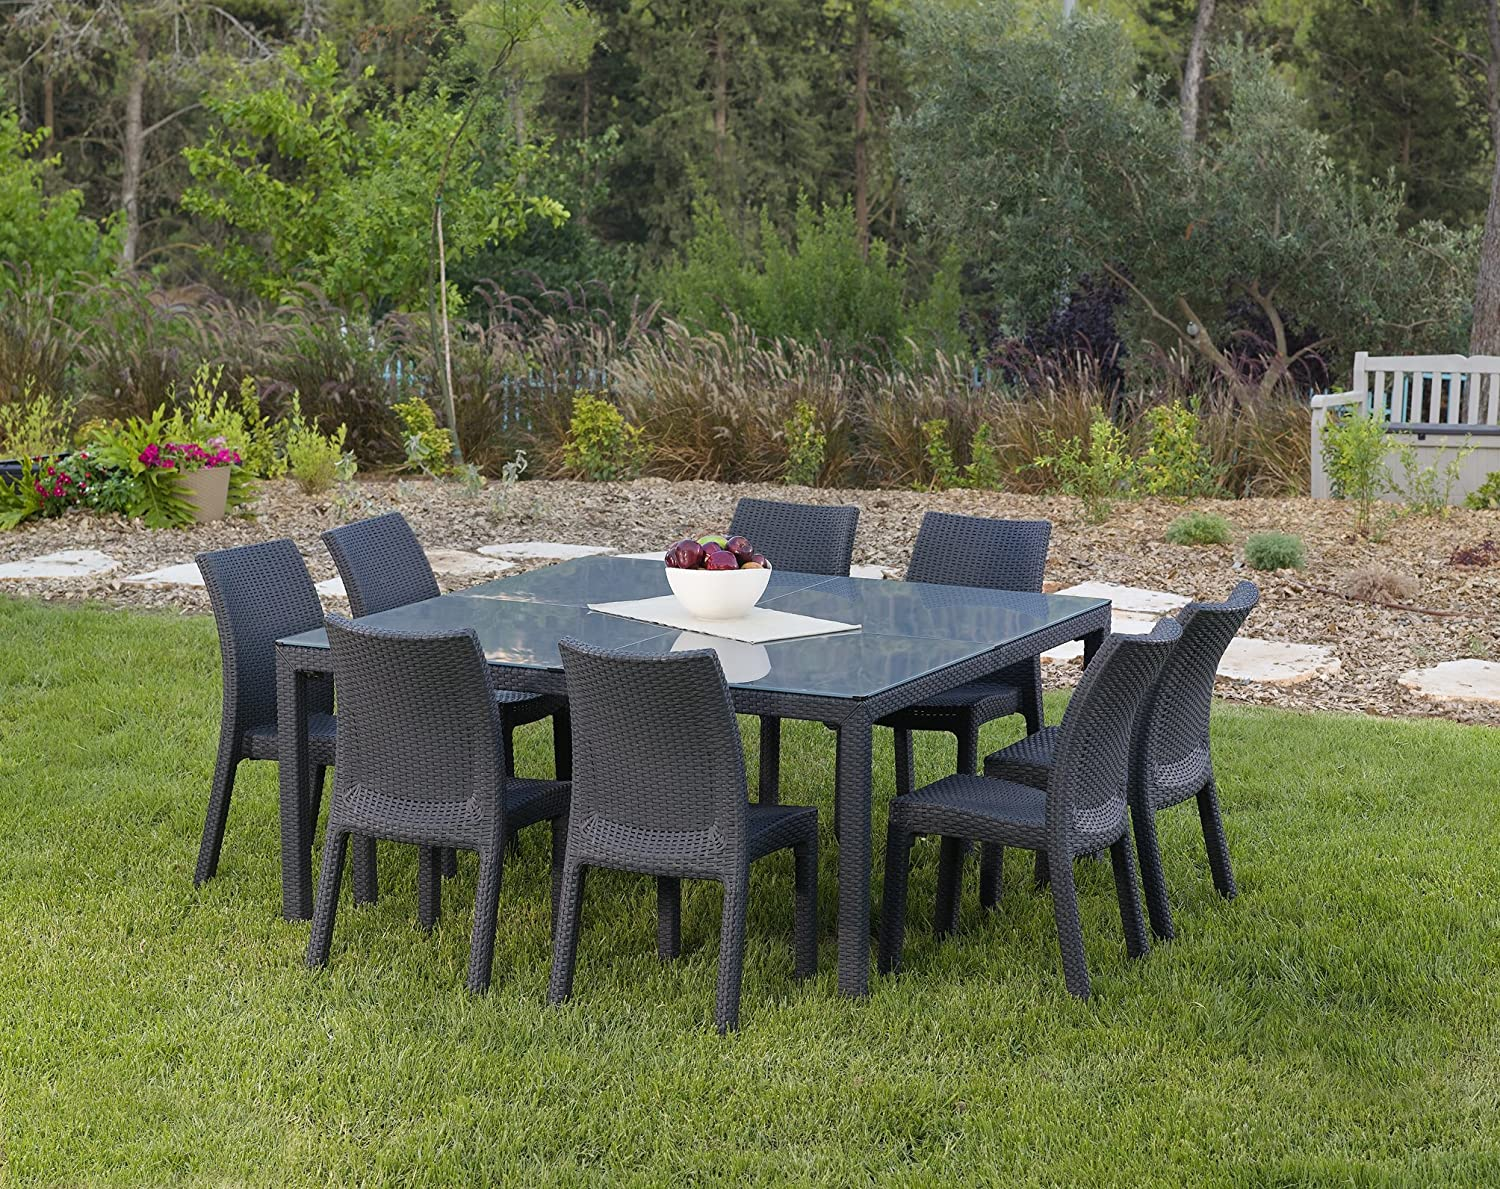 Charming Amazon.com : Keter Fiji Dining Table Modern All Weather Patio Garden Outdoor  Furniture Square, Charcoal : Keter Outdoor Dining Set : Garden U0026 Outdoor